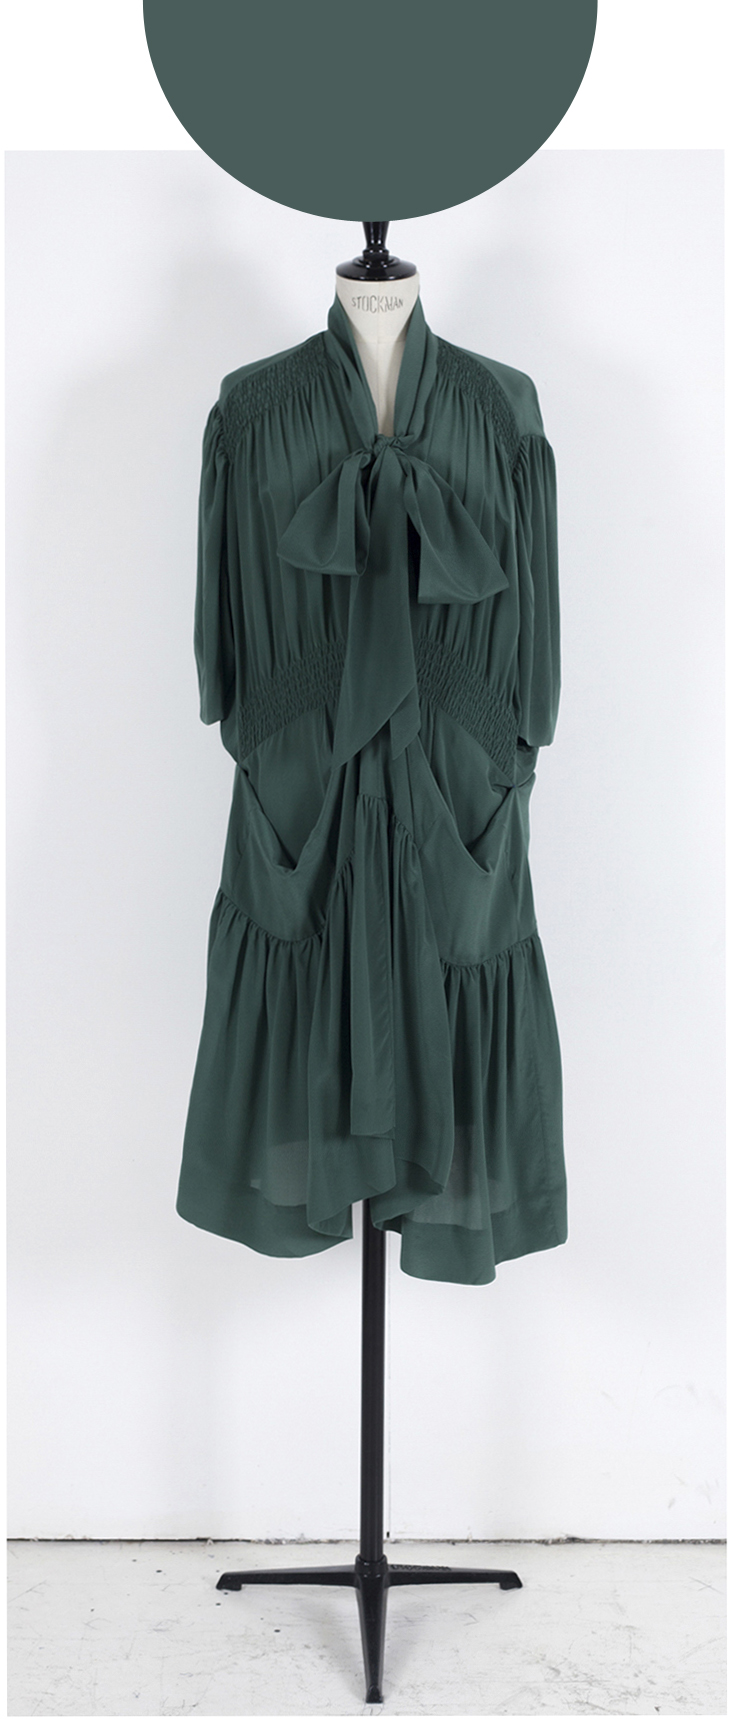 03B MID GREEN/ Short Sleeve Pull up Midi/Maxi Adjustor Dress